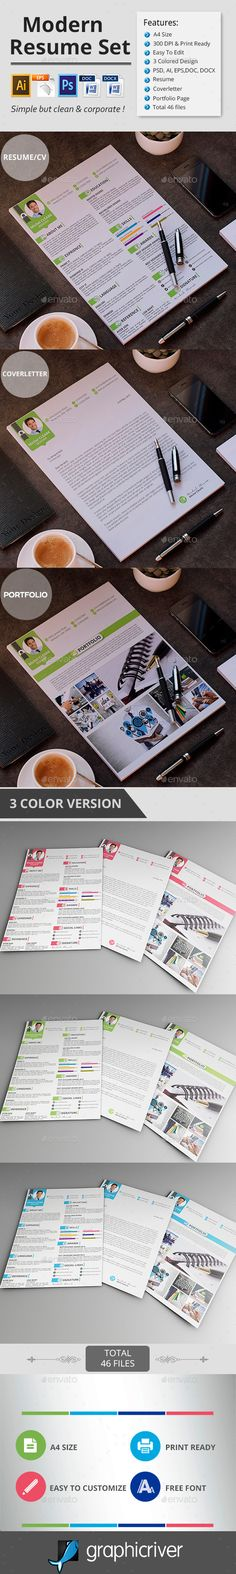 CV Ideas Hire Me Flyer Cv ideas, Marketing flyers and Psd templates - font on resume